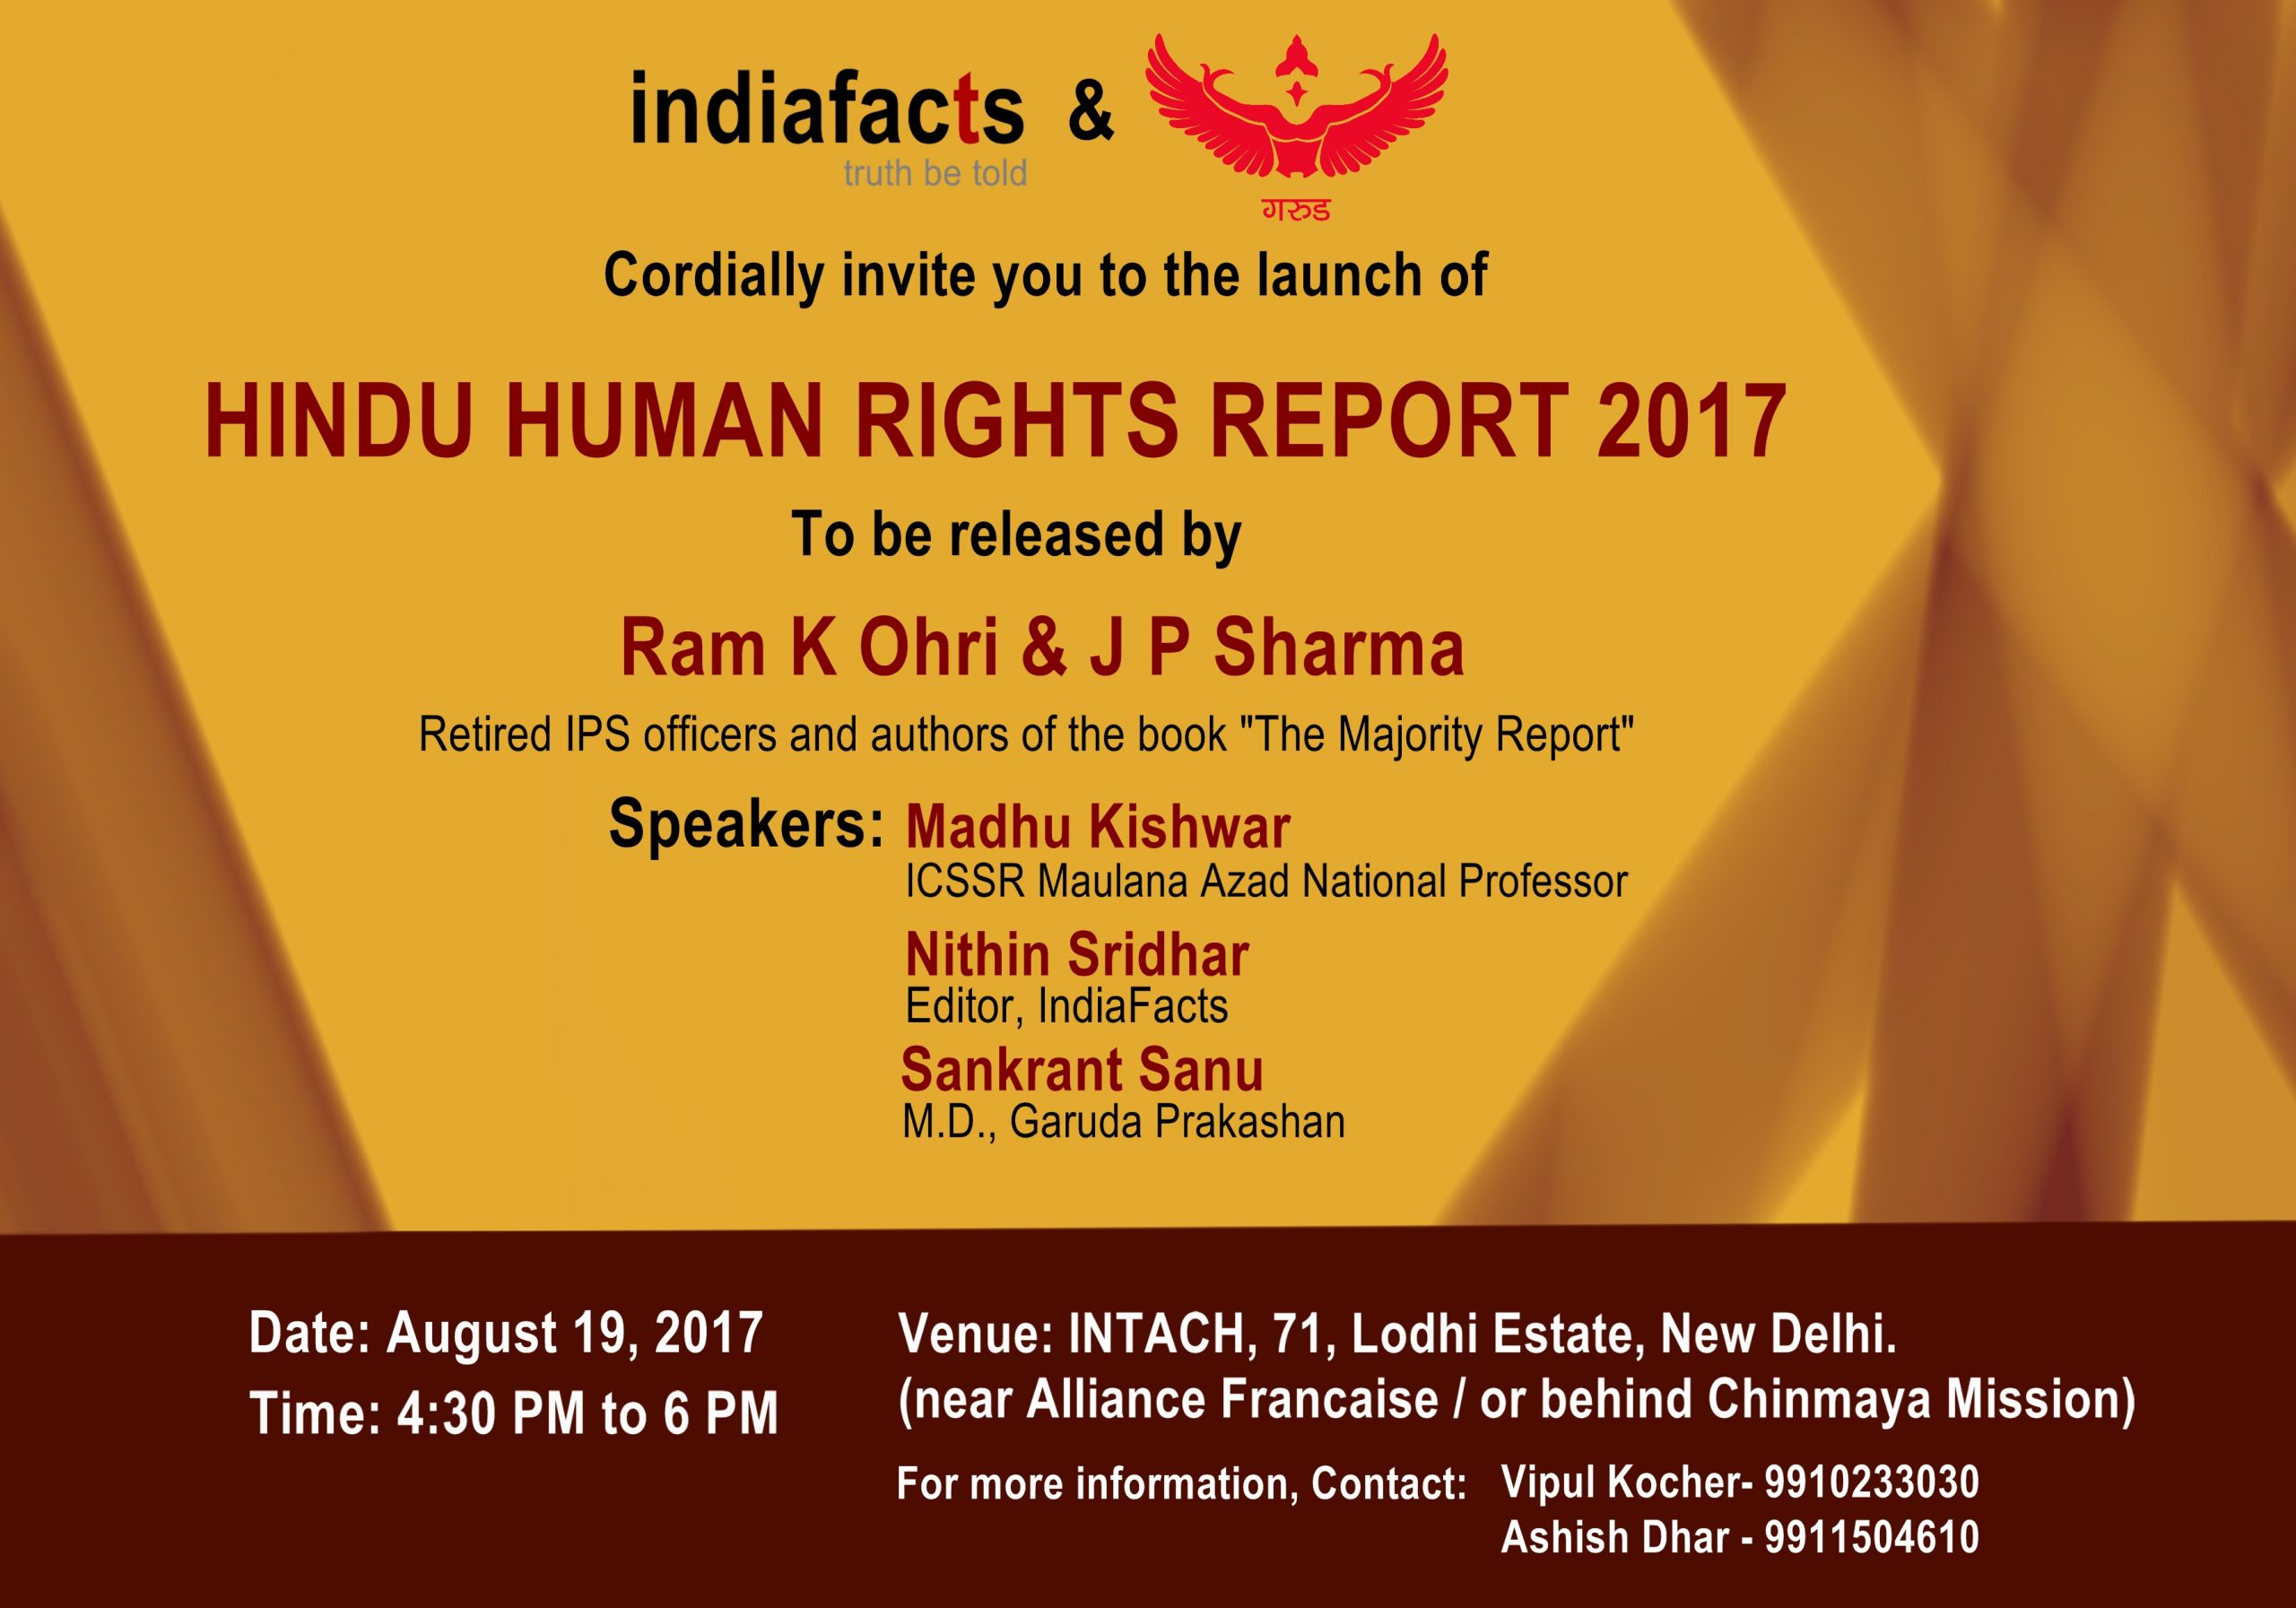 IndiaFacts to Launch Hindu Human Rights Report 2017 on August 19